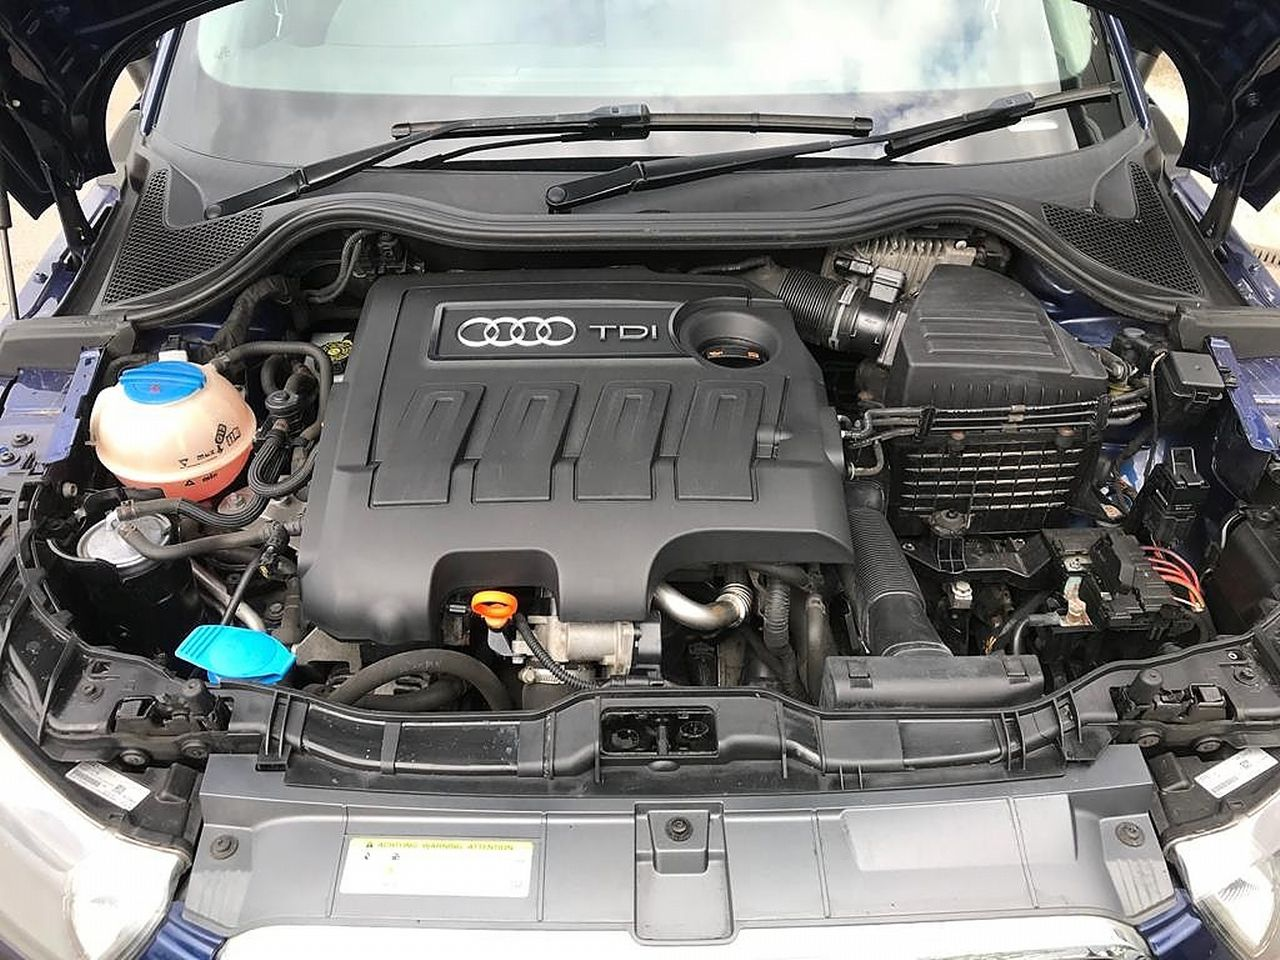 2011 AUDI A1 1.6 TDI Sport 105PS - Picture 13 of 19